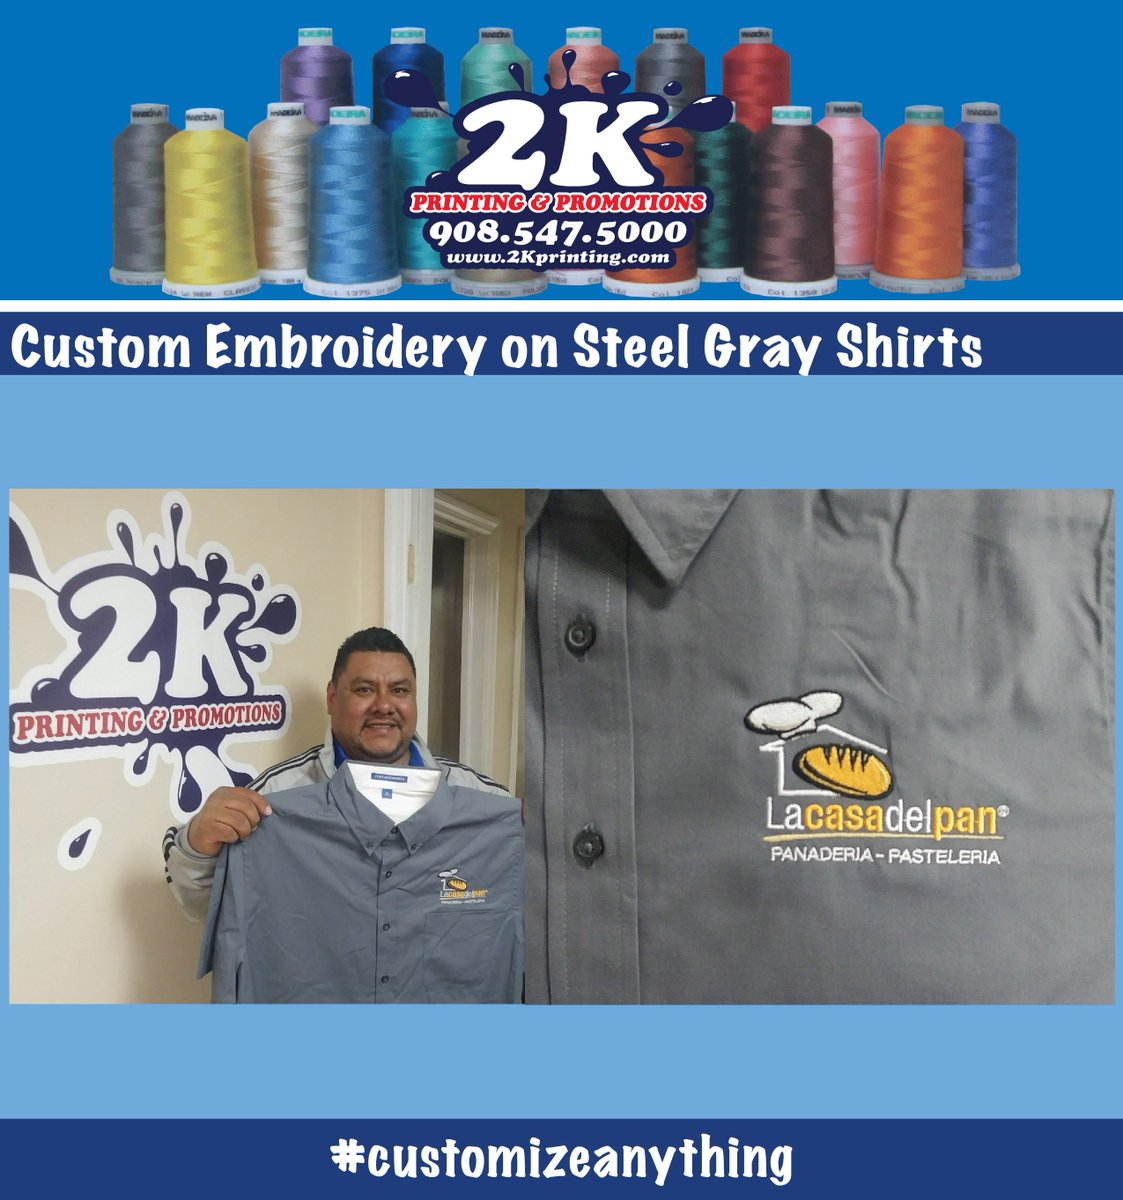 489d58e5 When it comes to #embroidery on #polos #hats #dressshirts #totes and more,  2K can #customizeanything with your logo.pic.twitter.com/6HI5tckeot